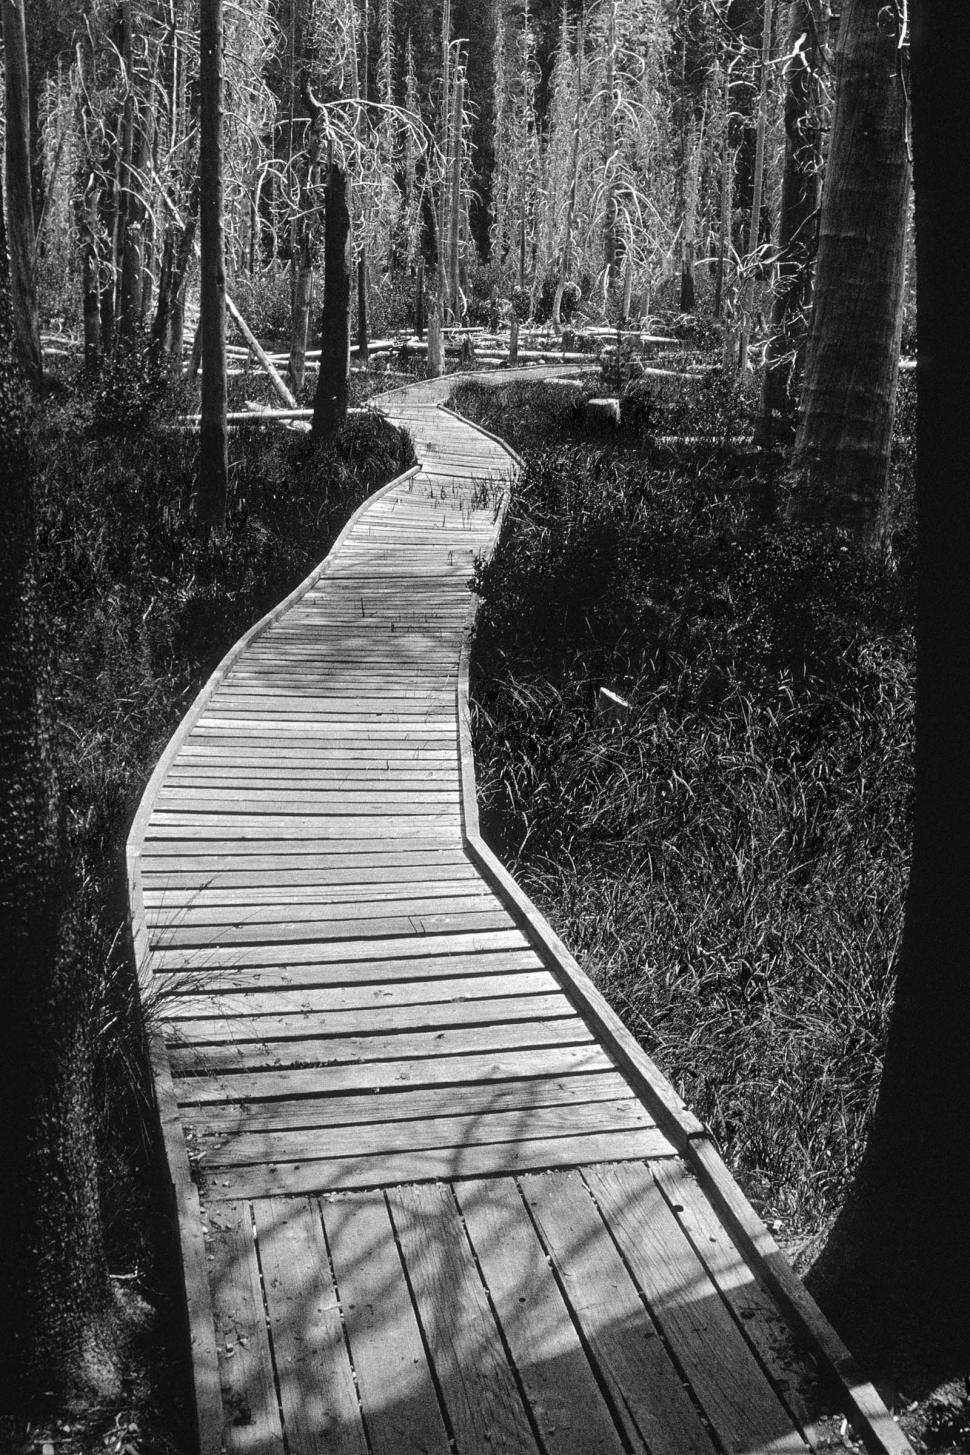 Download Free Stock HD Photo of Boardwalk through marsh, black and white Online